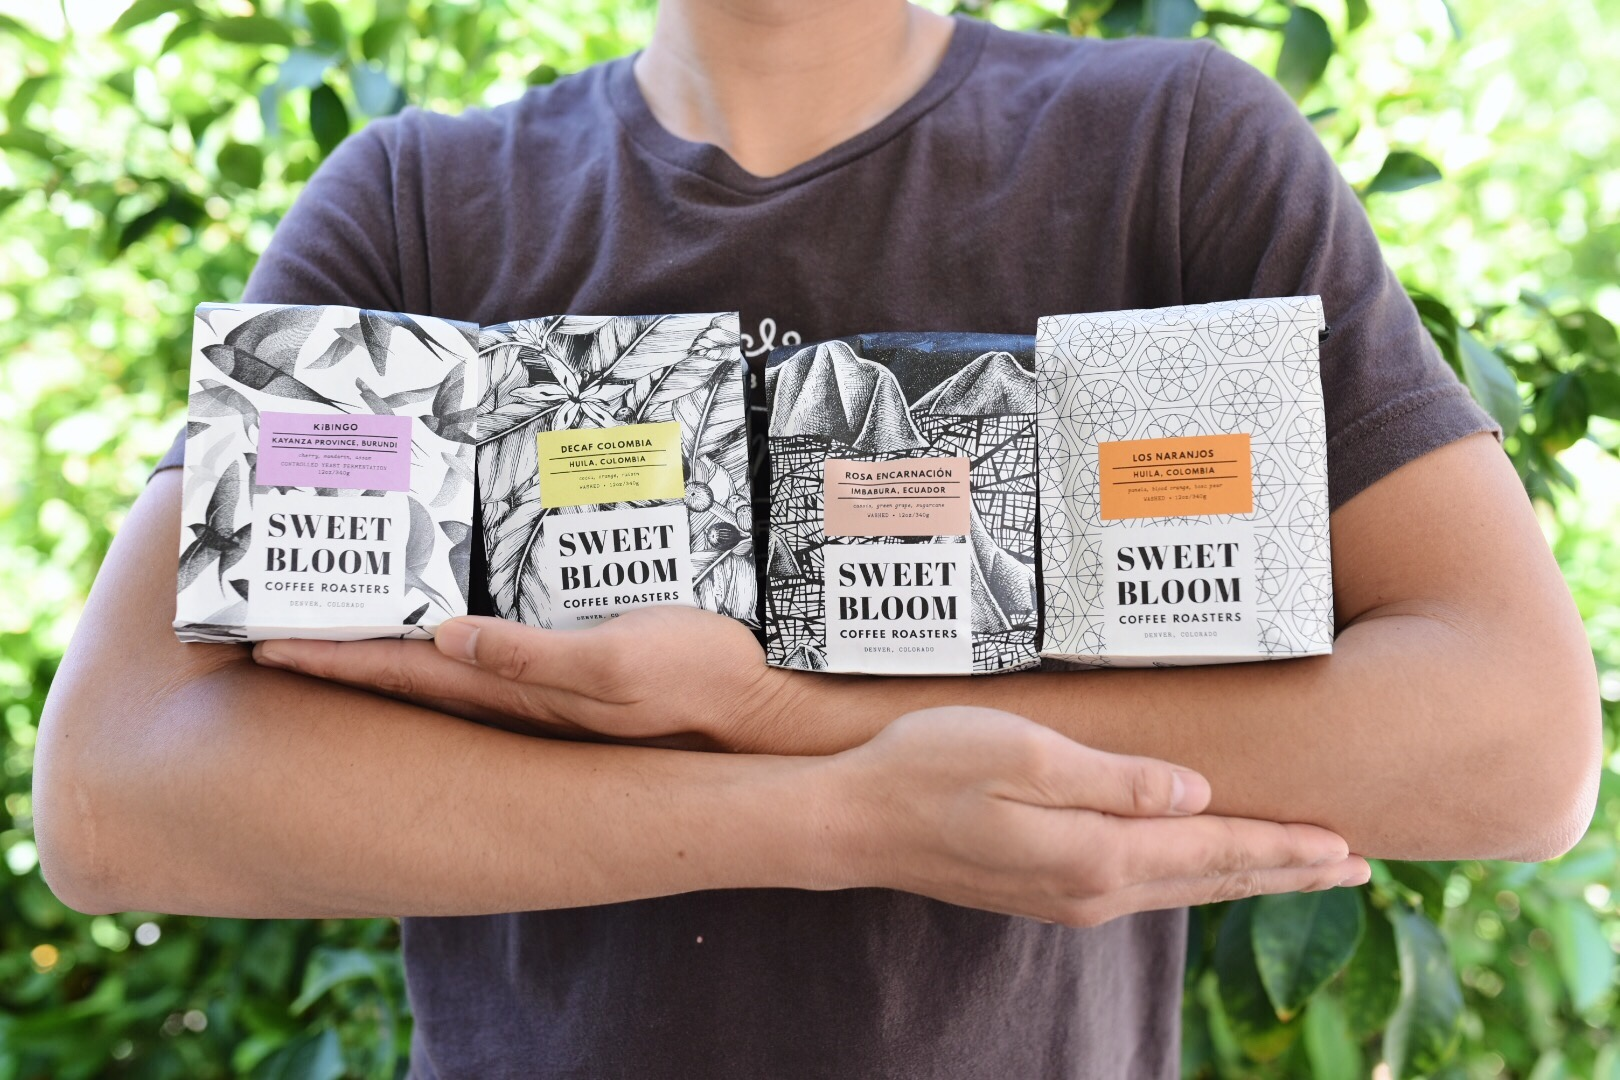 Proudly Serving Sweet Bloom Coffee from Denver, CO.